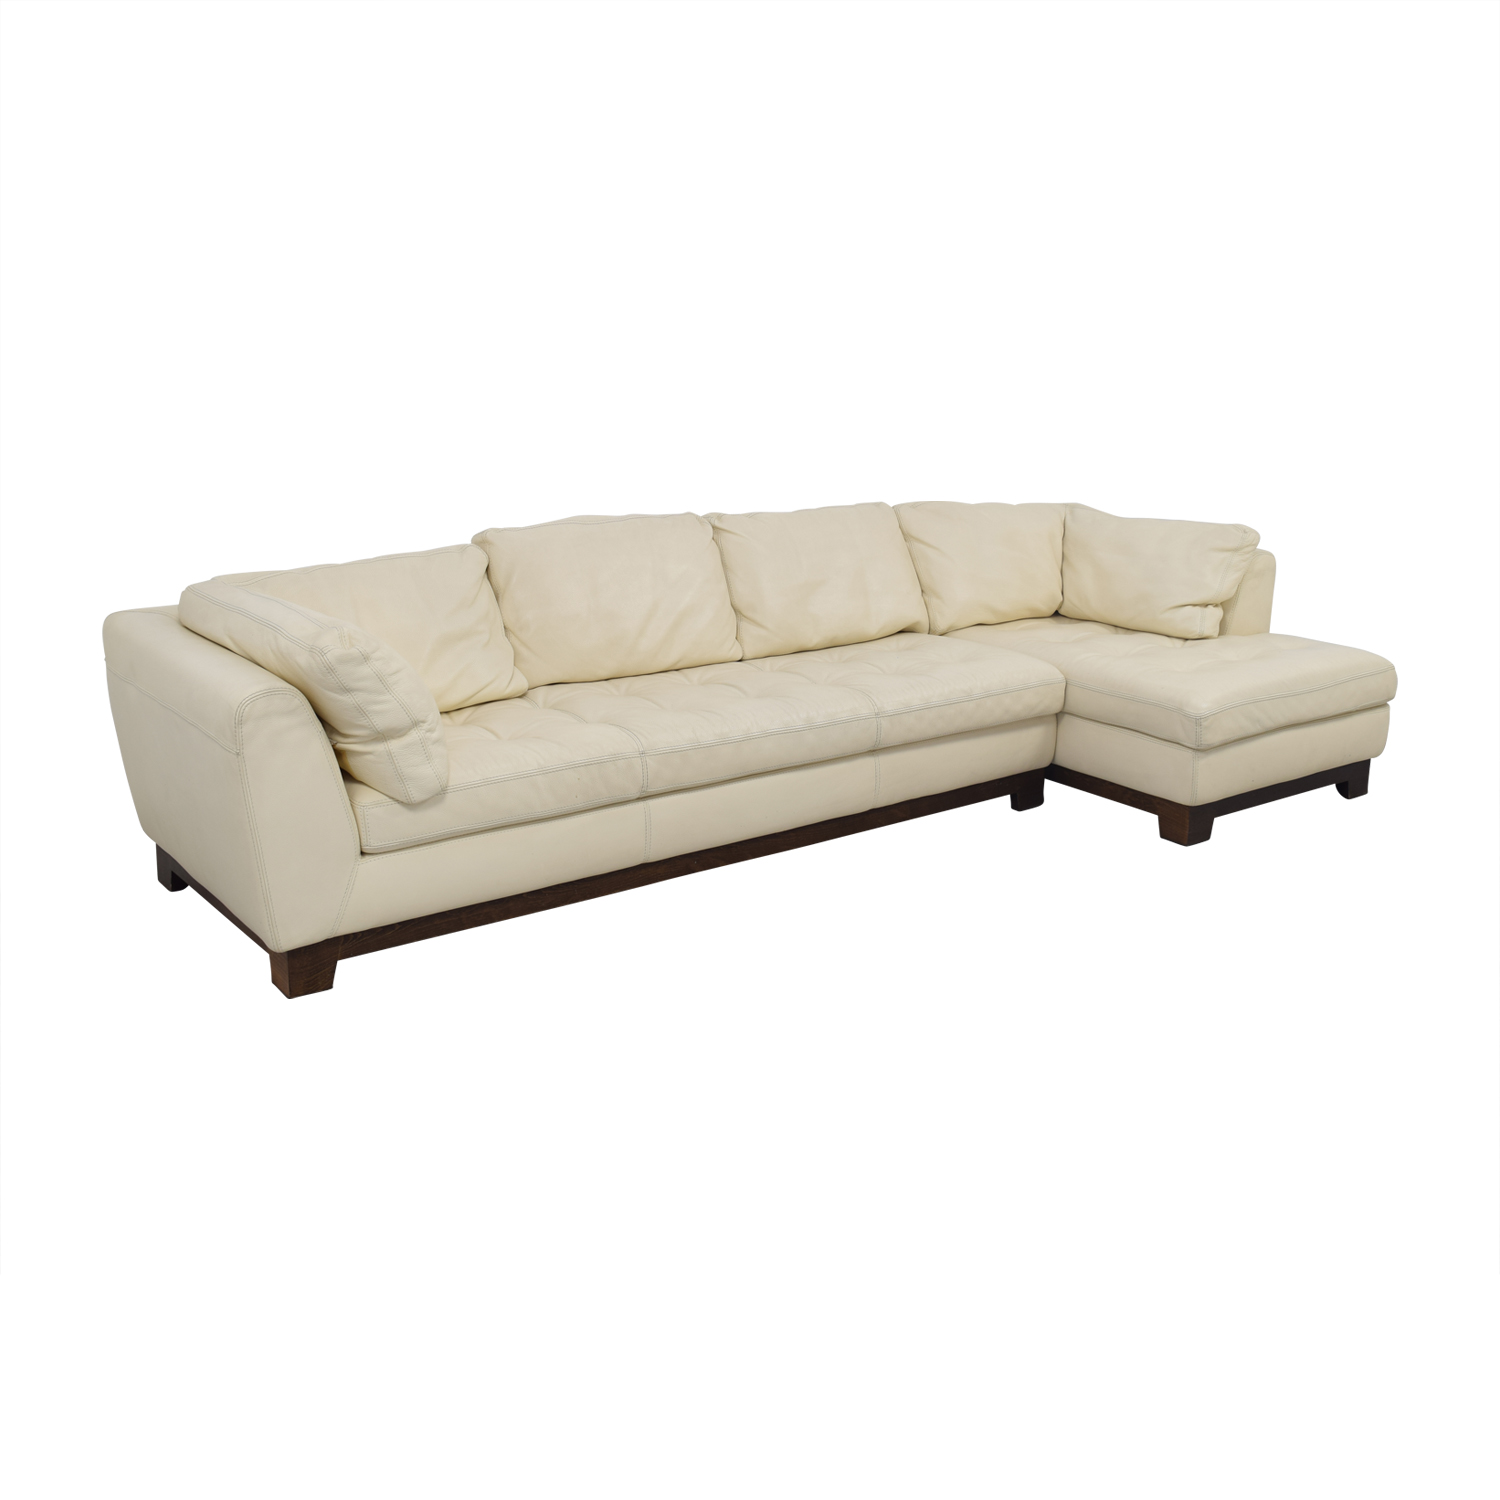 76 off roche bobois roche bobois cream leather chaise. Black Bedroom Furniture Sets. Home Design Ideas